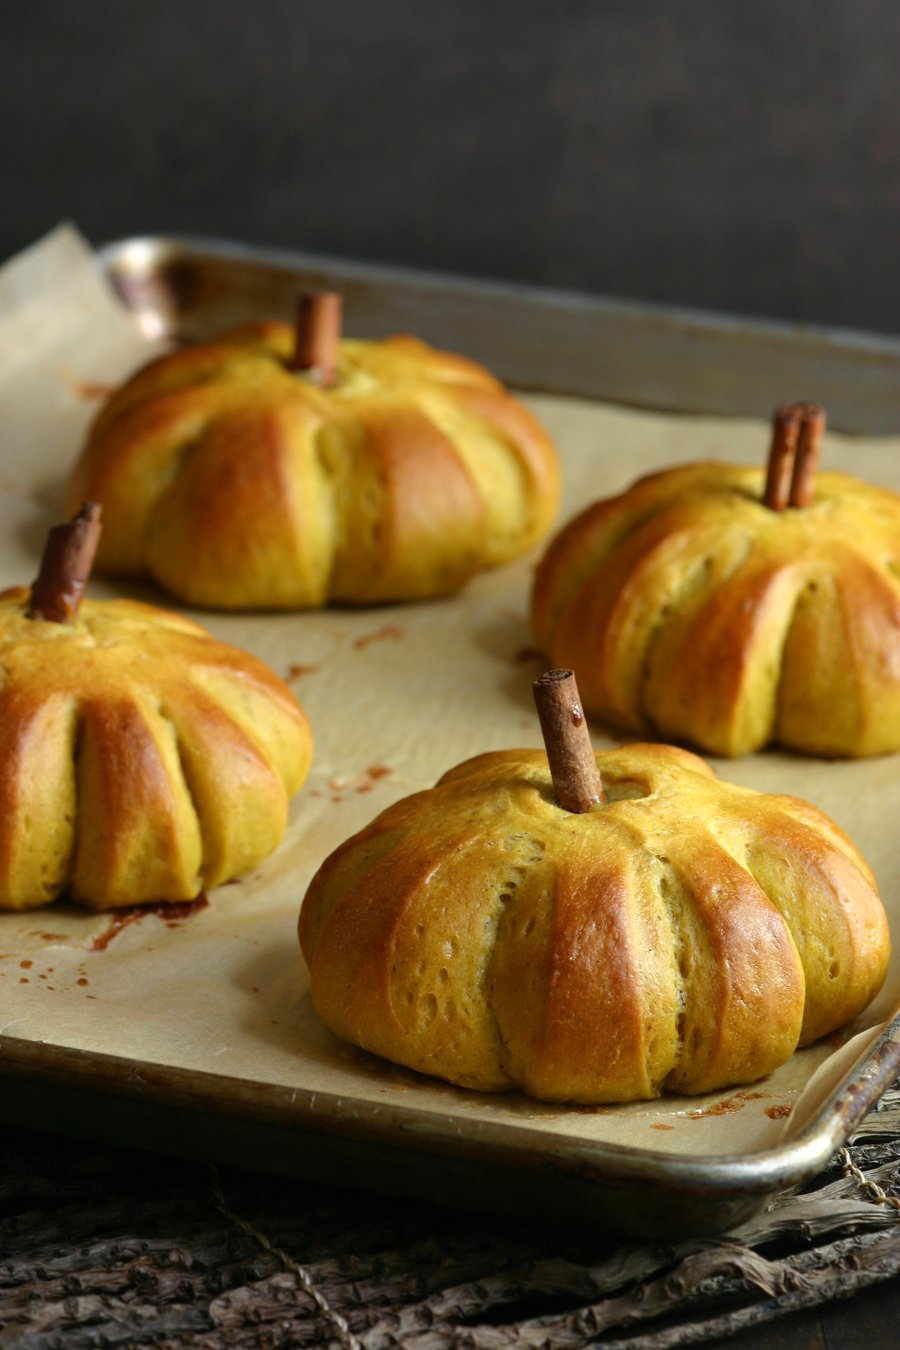 These delightful vegan Sweet Pumpkin Buns feature the comforting flavor of pumpkin along with warm spices and a hint of sweetness.